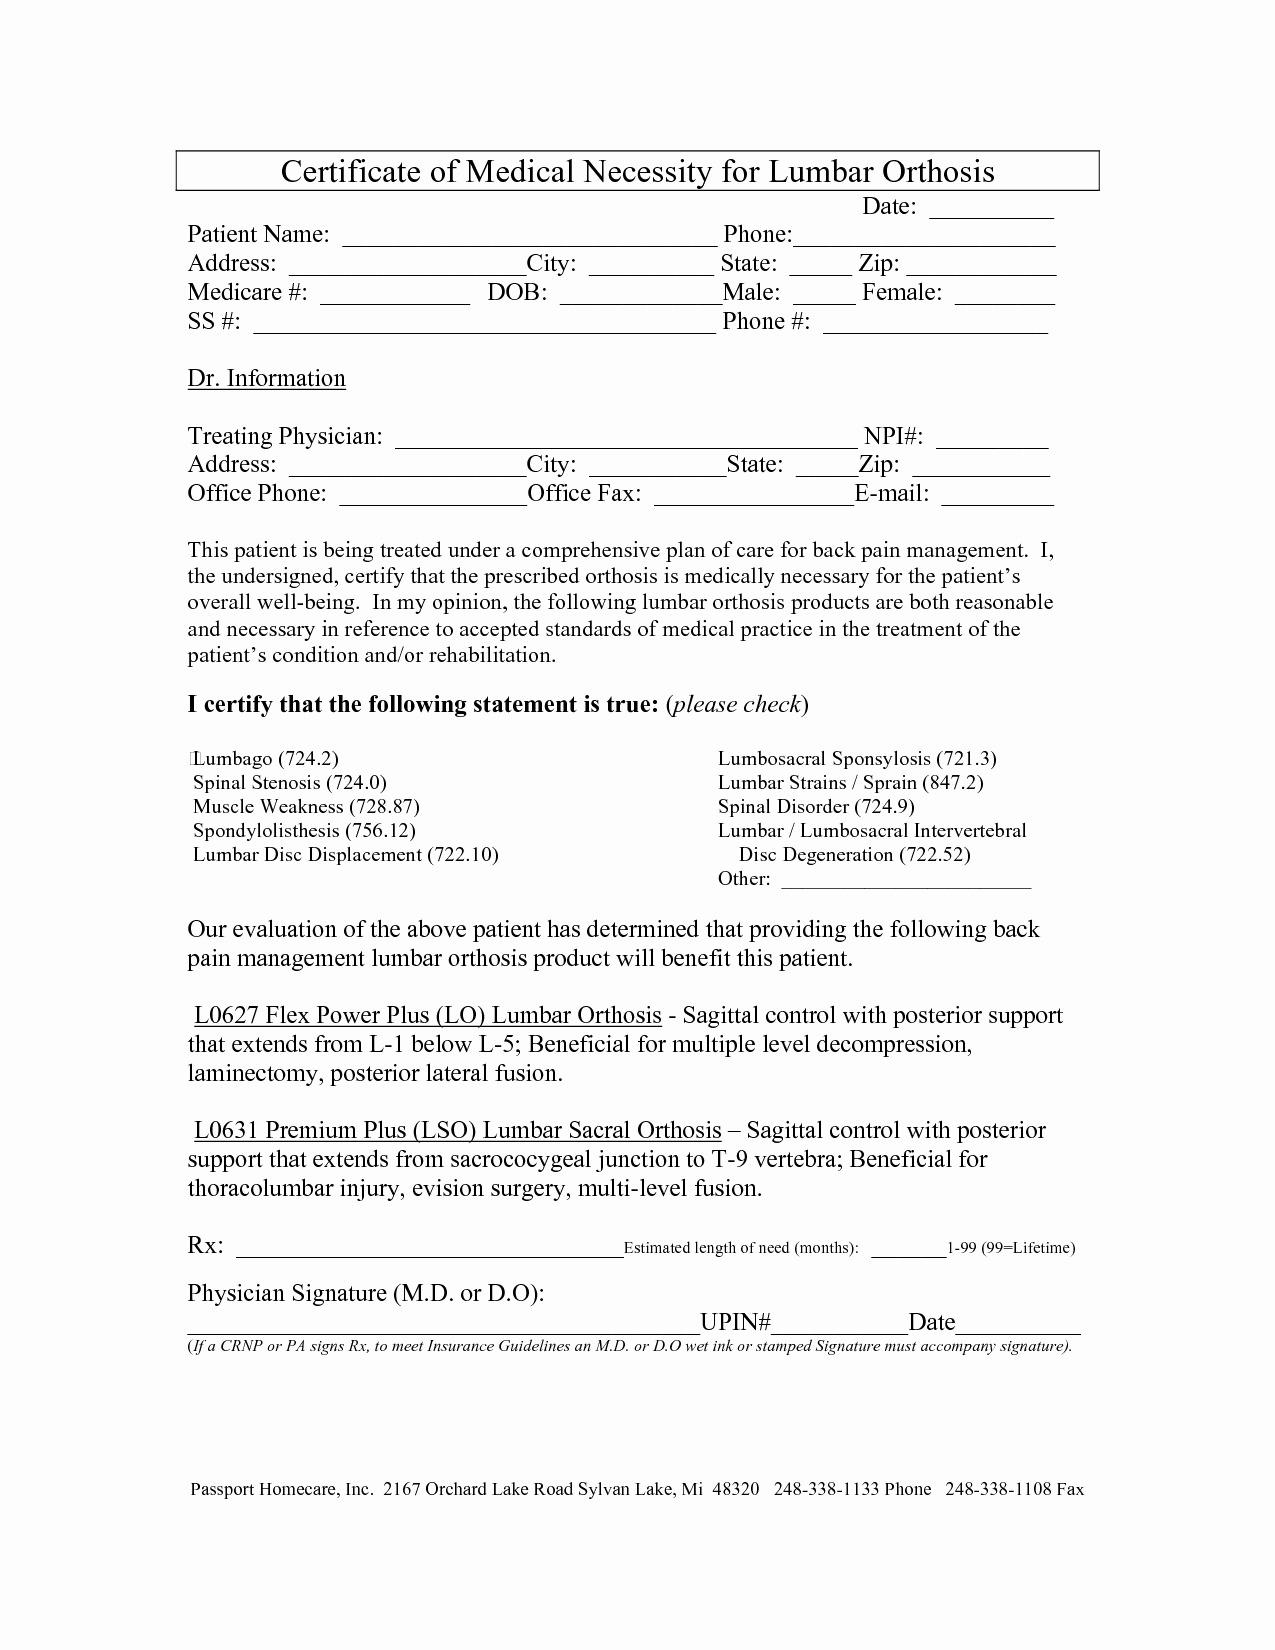 Certificate Of Medical Necessity form Template Lovely Best S Of Generic Certificate Medical Necessity